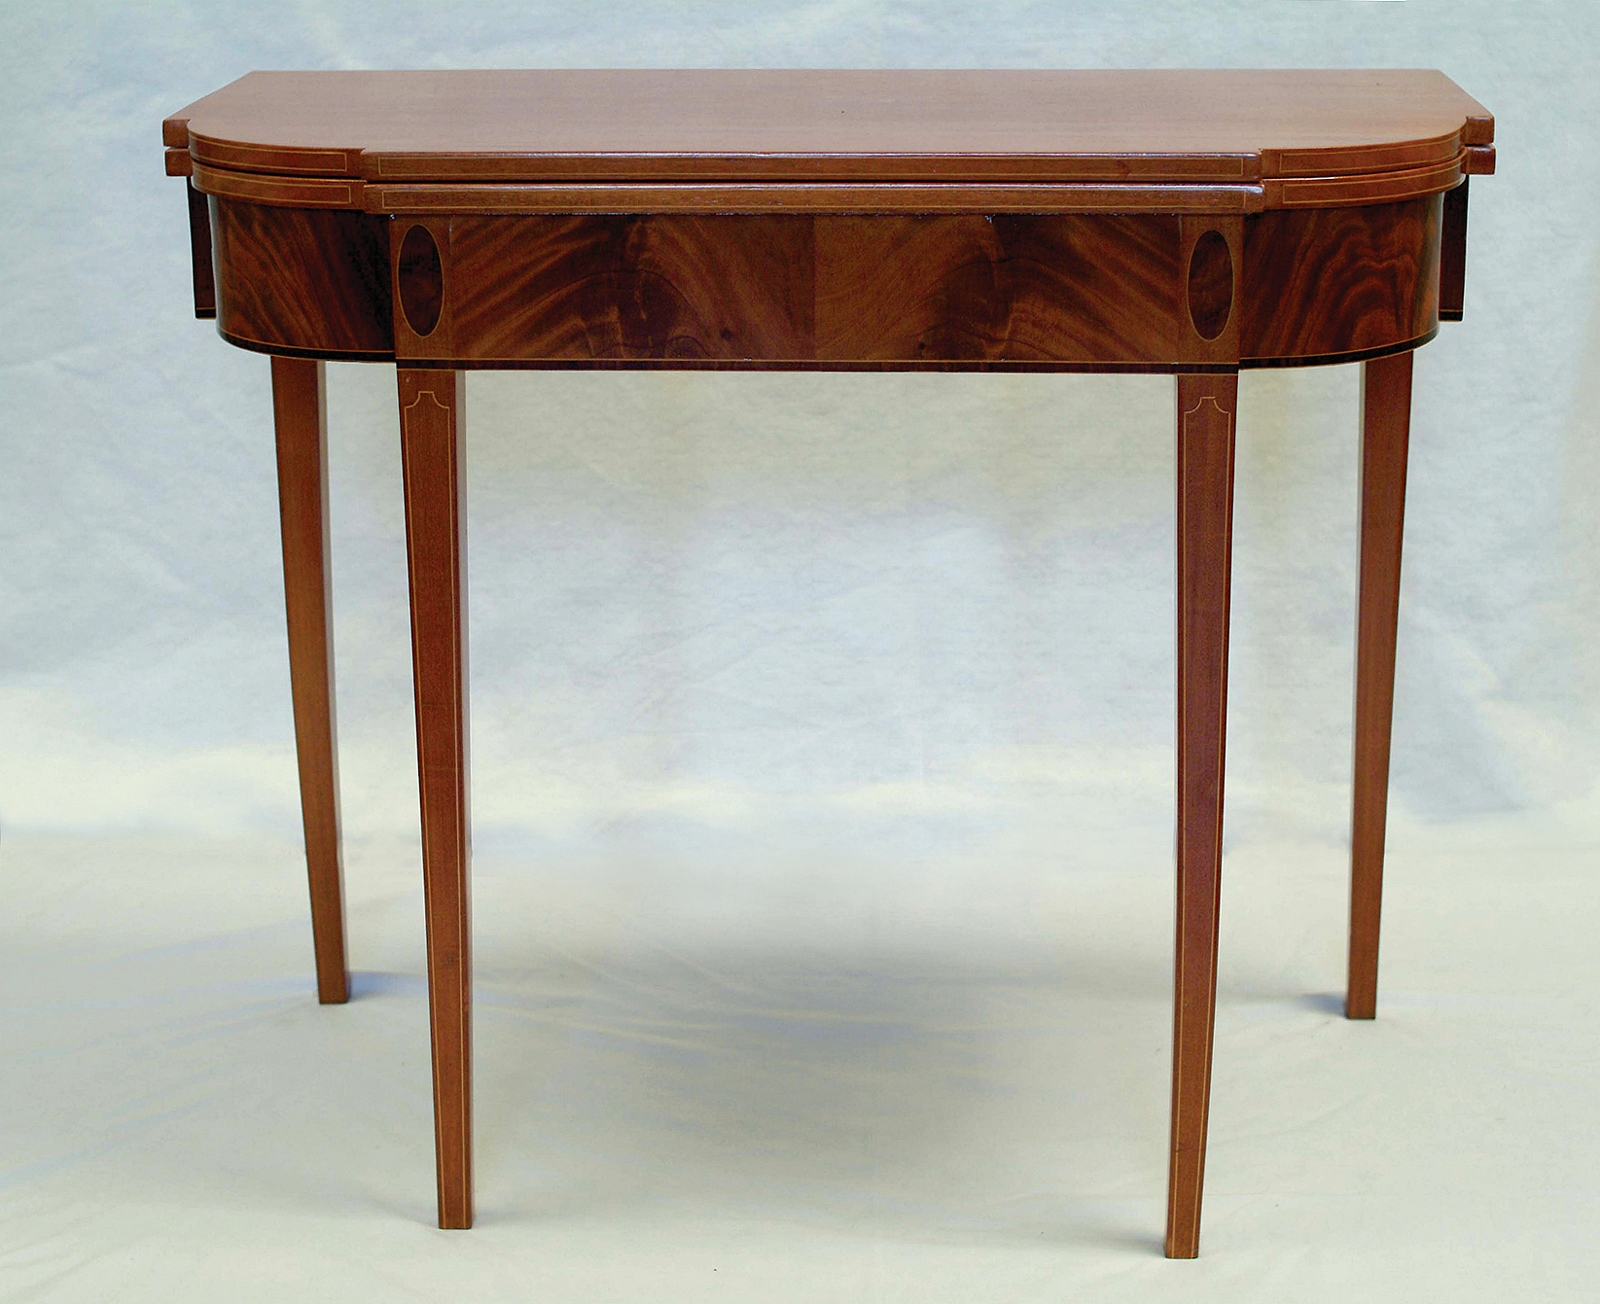 1796_frothingham_table2-1600x1304